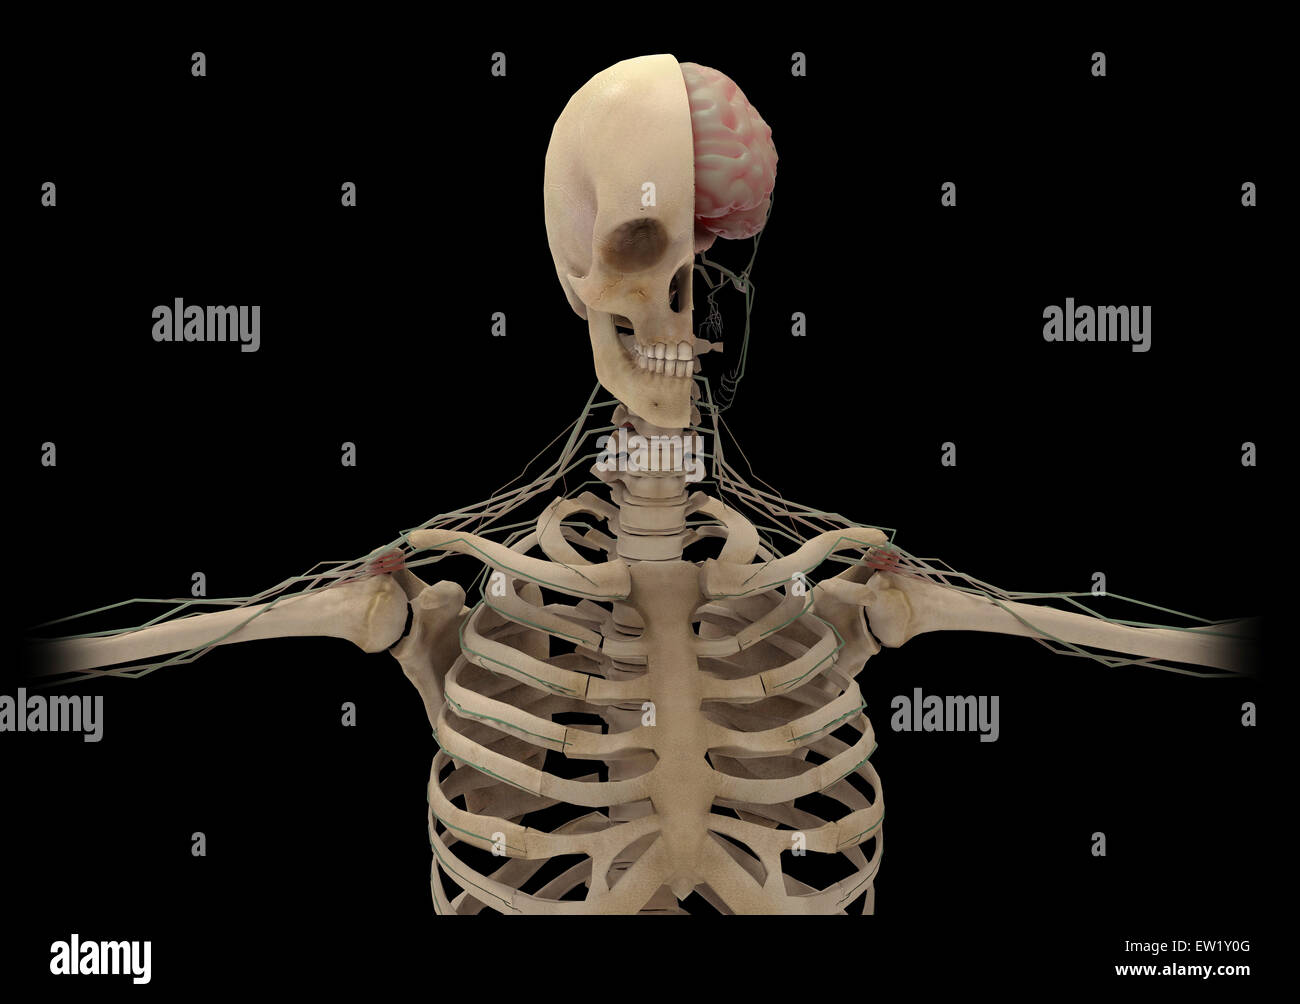 Human skeleton with transectional view of skull exposing the brain. - Stock Image